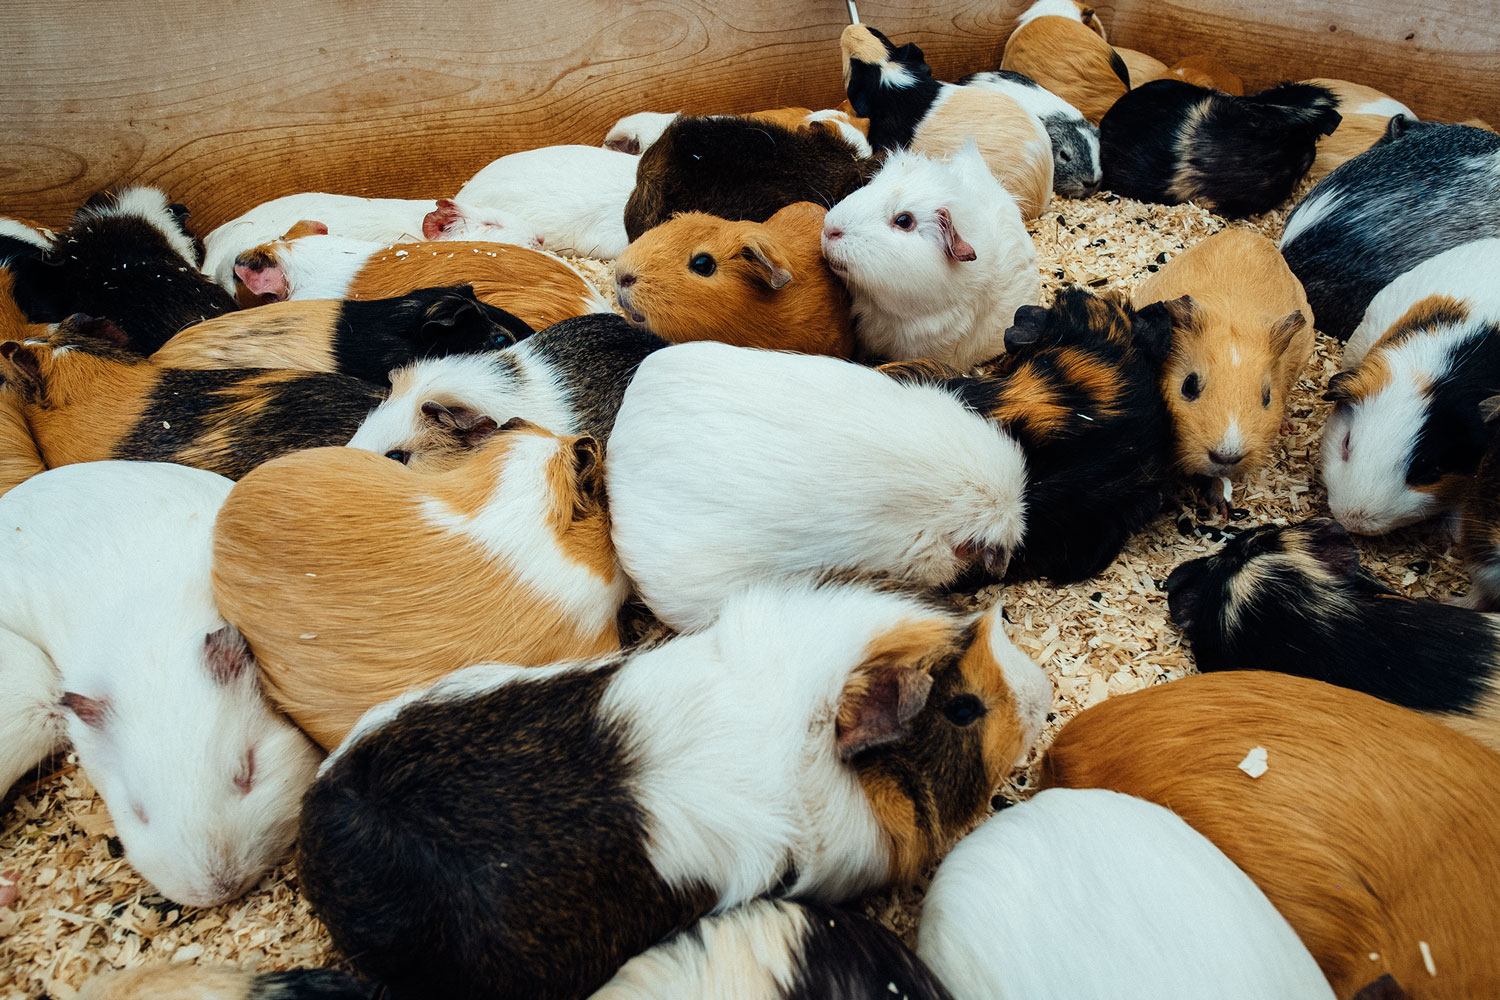 A literal BOX full of guinea pigs to play with. If that can't cheer you up, I don't know what will..